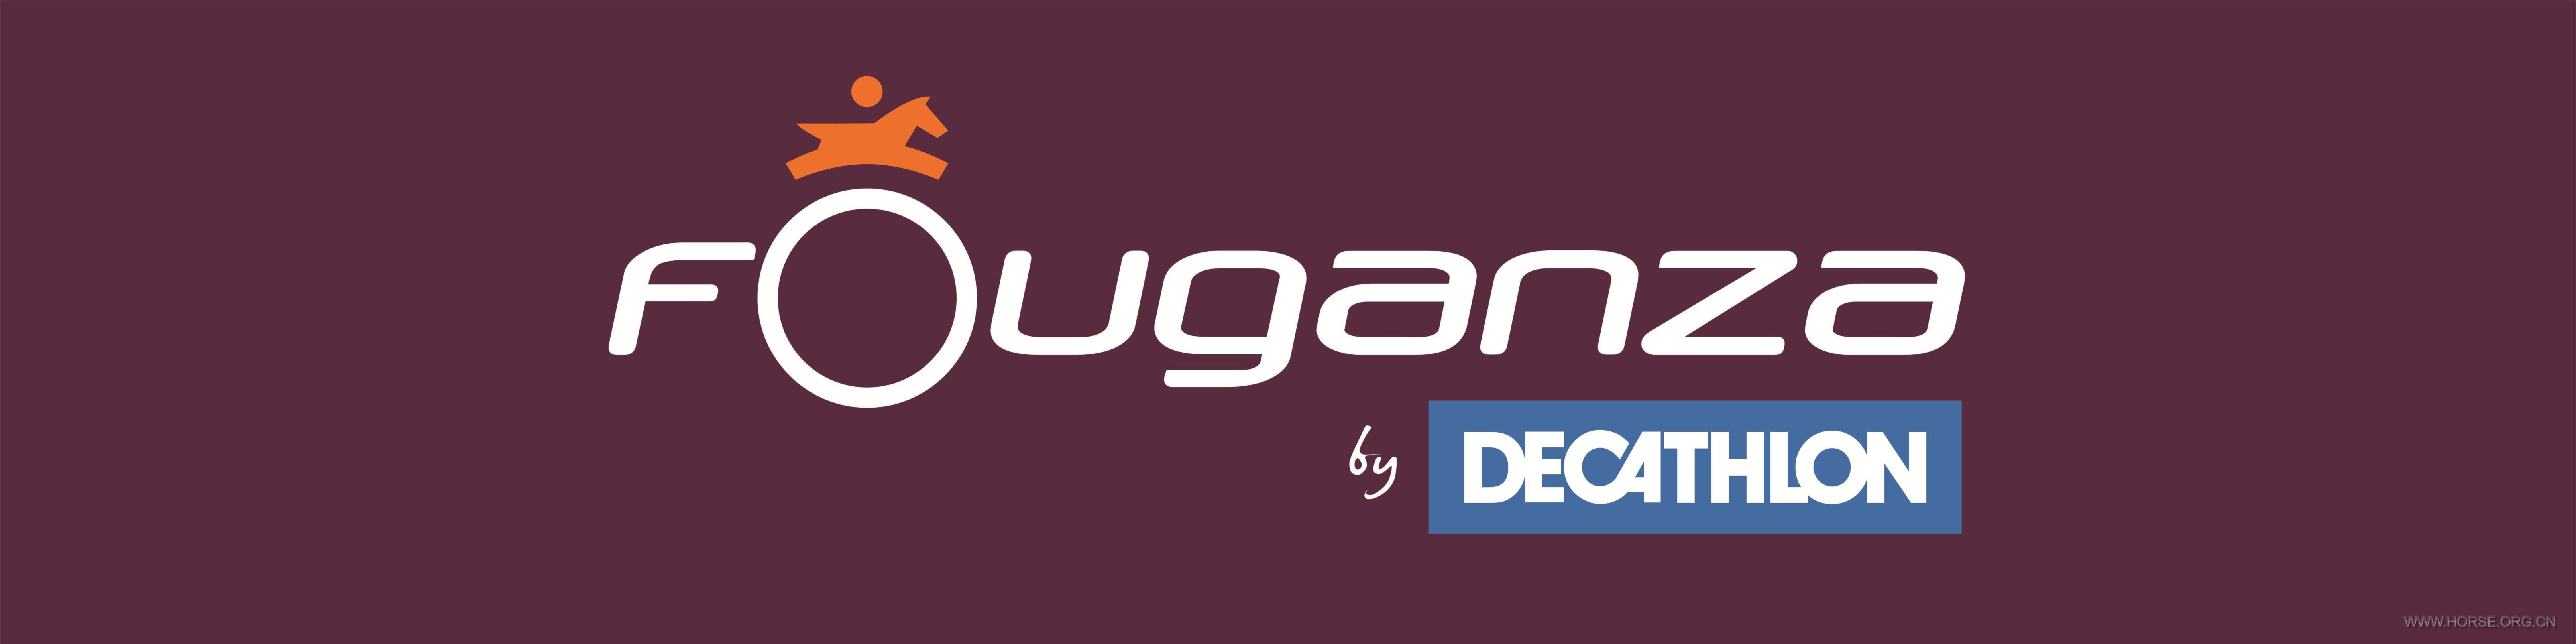 Bache Fouganza logo by Decathlon.jpg